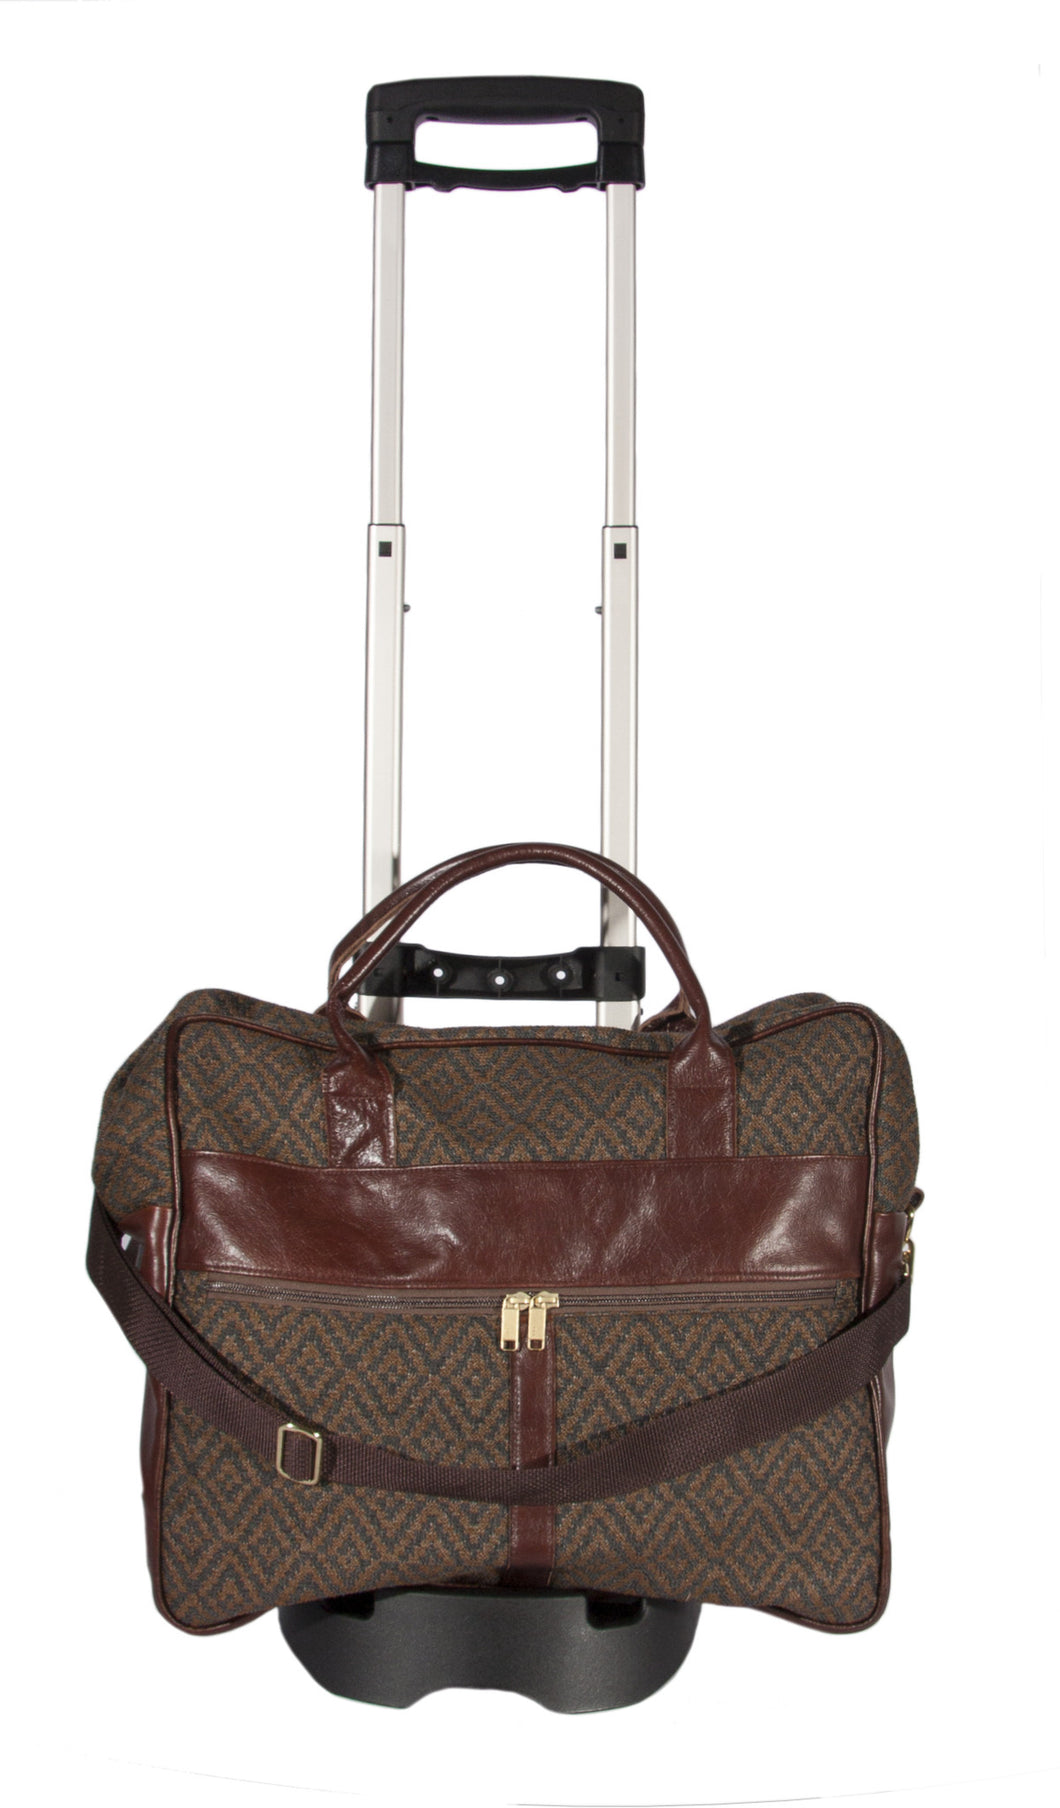 L1023B-3038 Grande Cargo Rioja Stone w Trolley Cart trimmed w Authentic Leather. Spacious Weekender Tote Double Straps and Adjustable Shoulder Strap. Part of the Unbridled Passion, Travel and Cosmetic Bags Collection 16